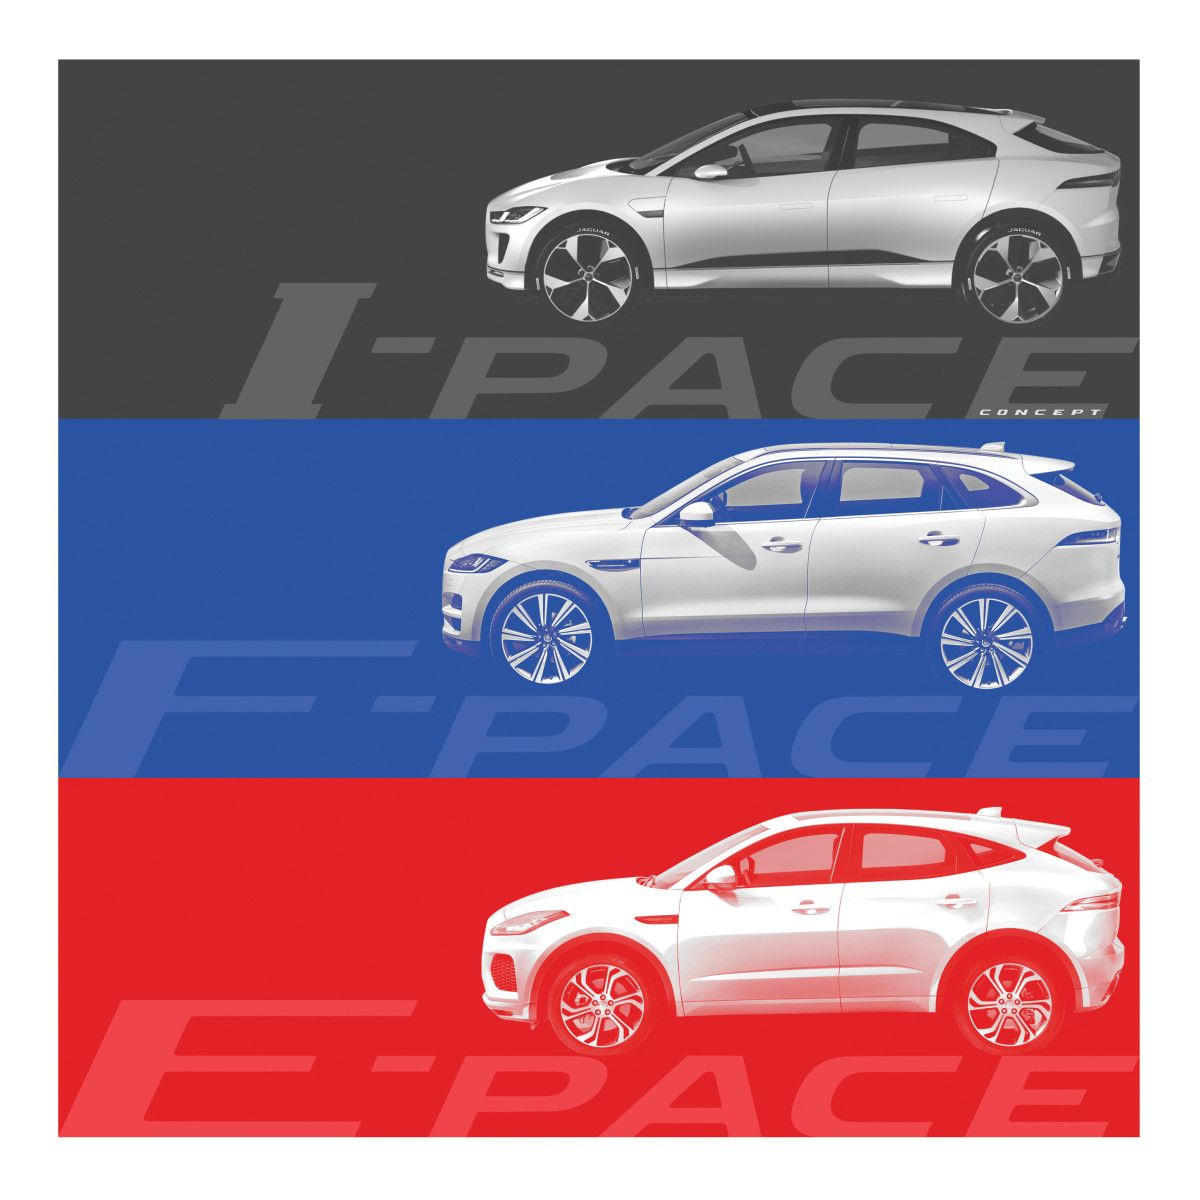 Jaguar Previews Its Smallest SUV, The E-PACE